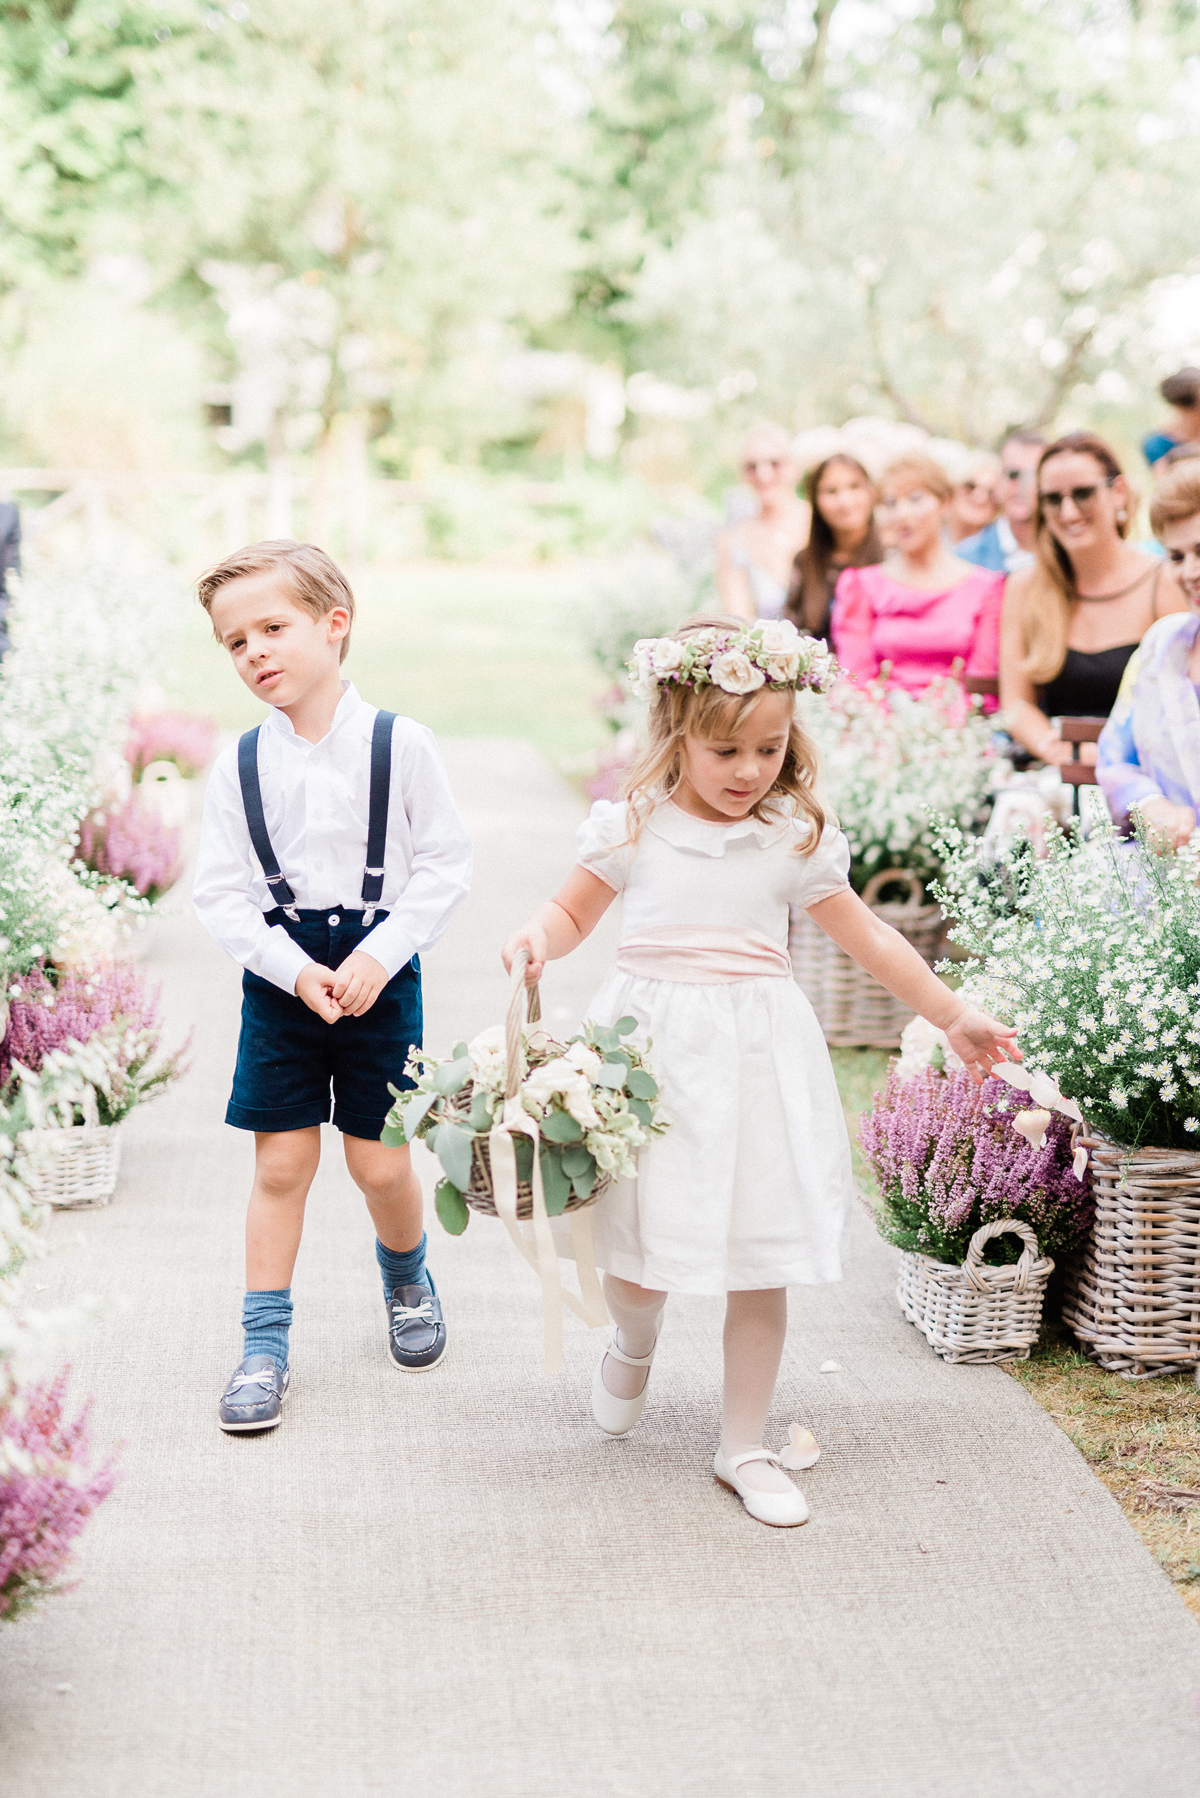 flower girl and ring bearer walking down processional wedding aisle